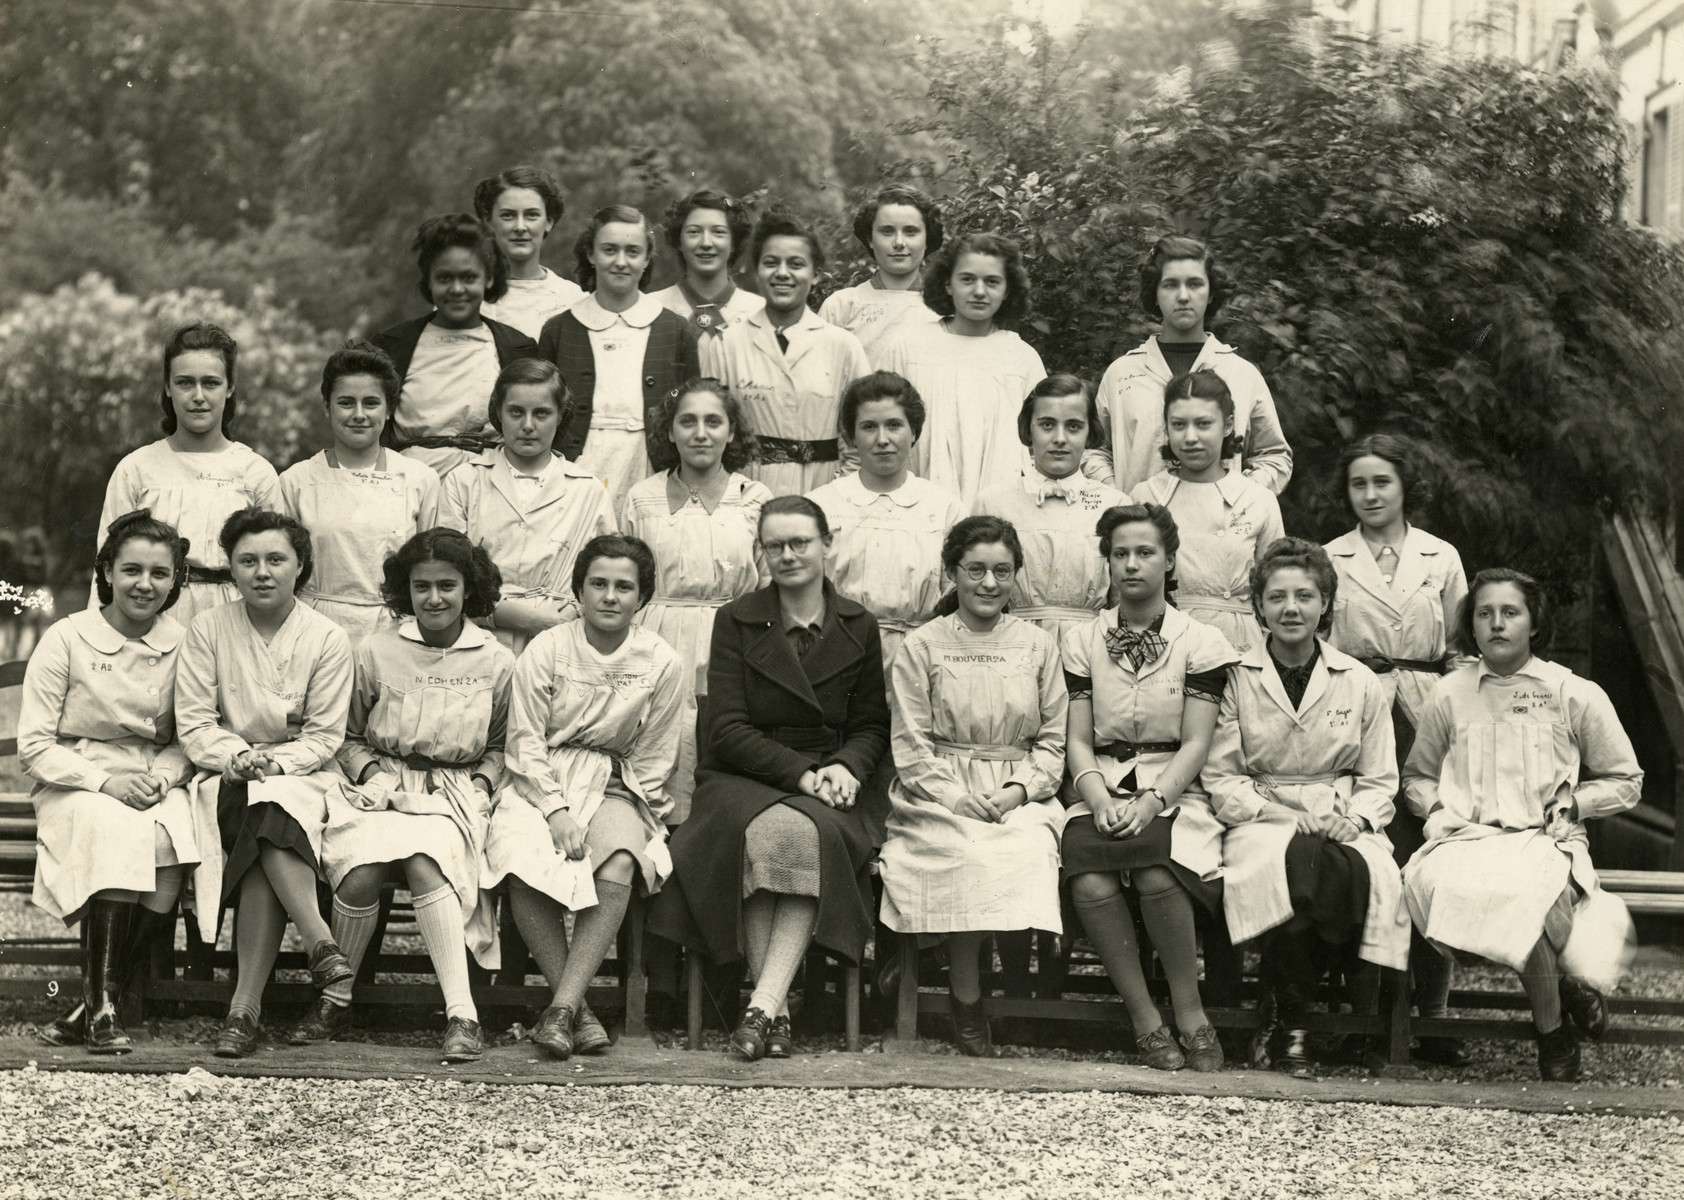 Nadia Cohen with her classmates in a boarding school in France. Nadia is in the first row, 3rd from the left.